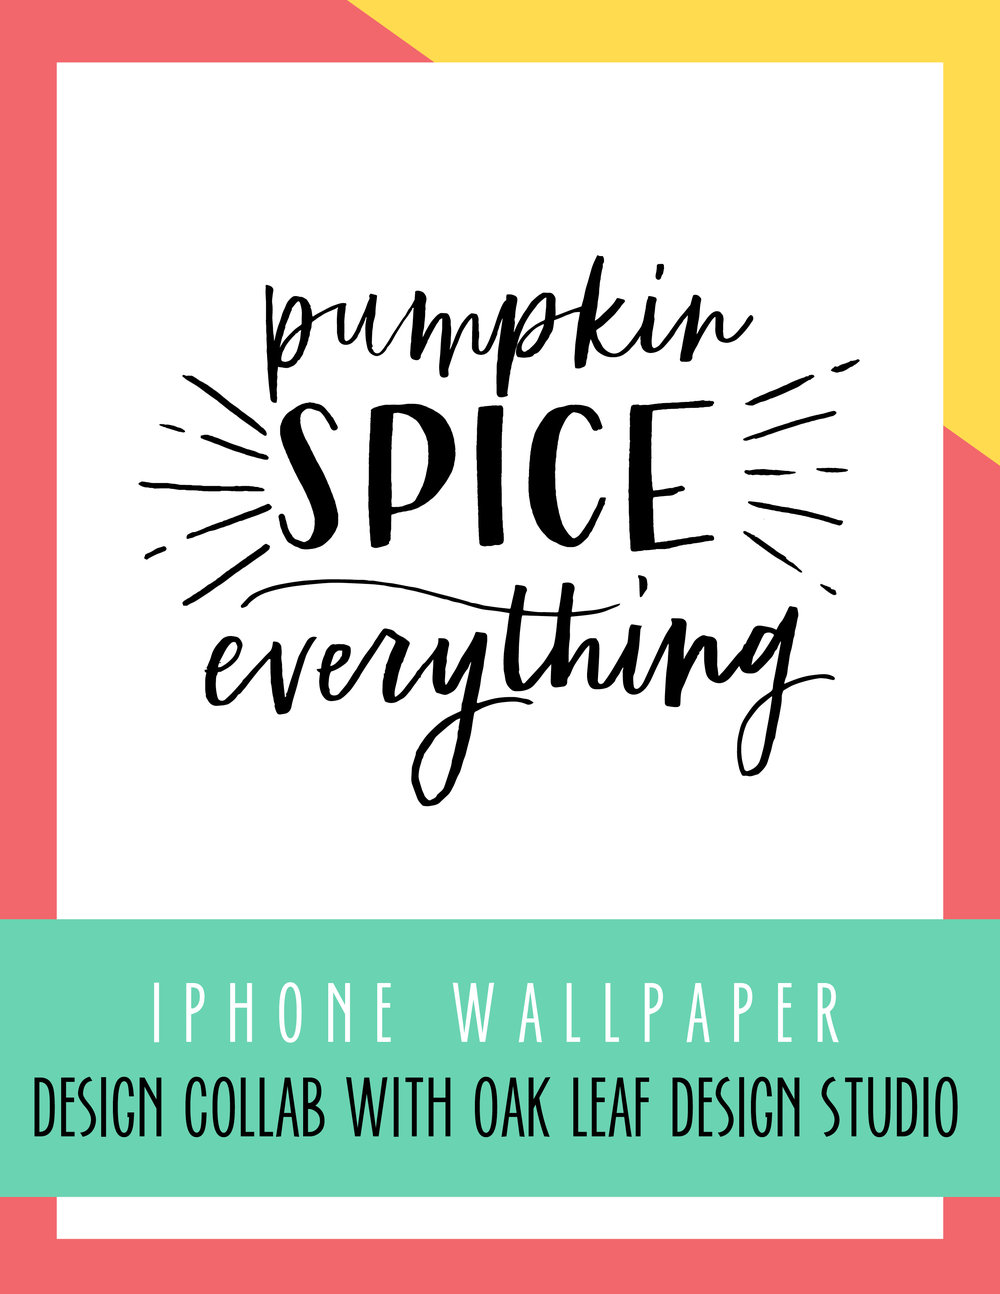 Bold & Pop Freebie Collaboration with Oak Leaf Design Studio : Pumpkin Spice Everything iPhone Wallpaper